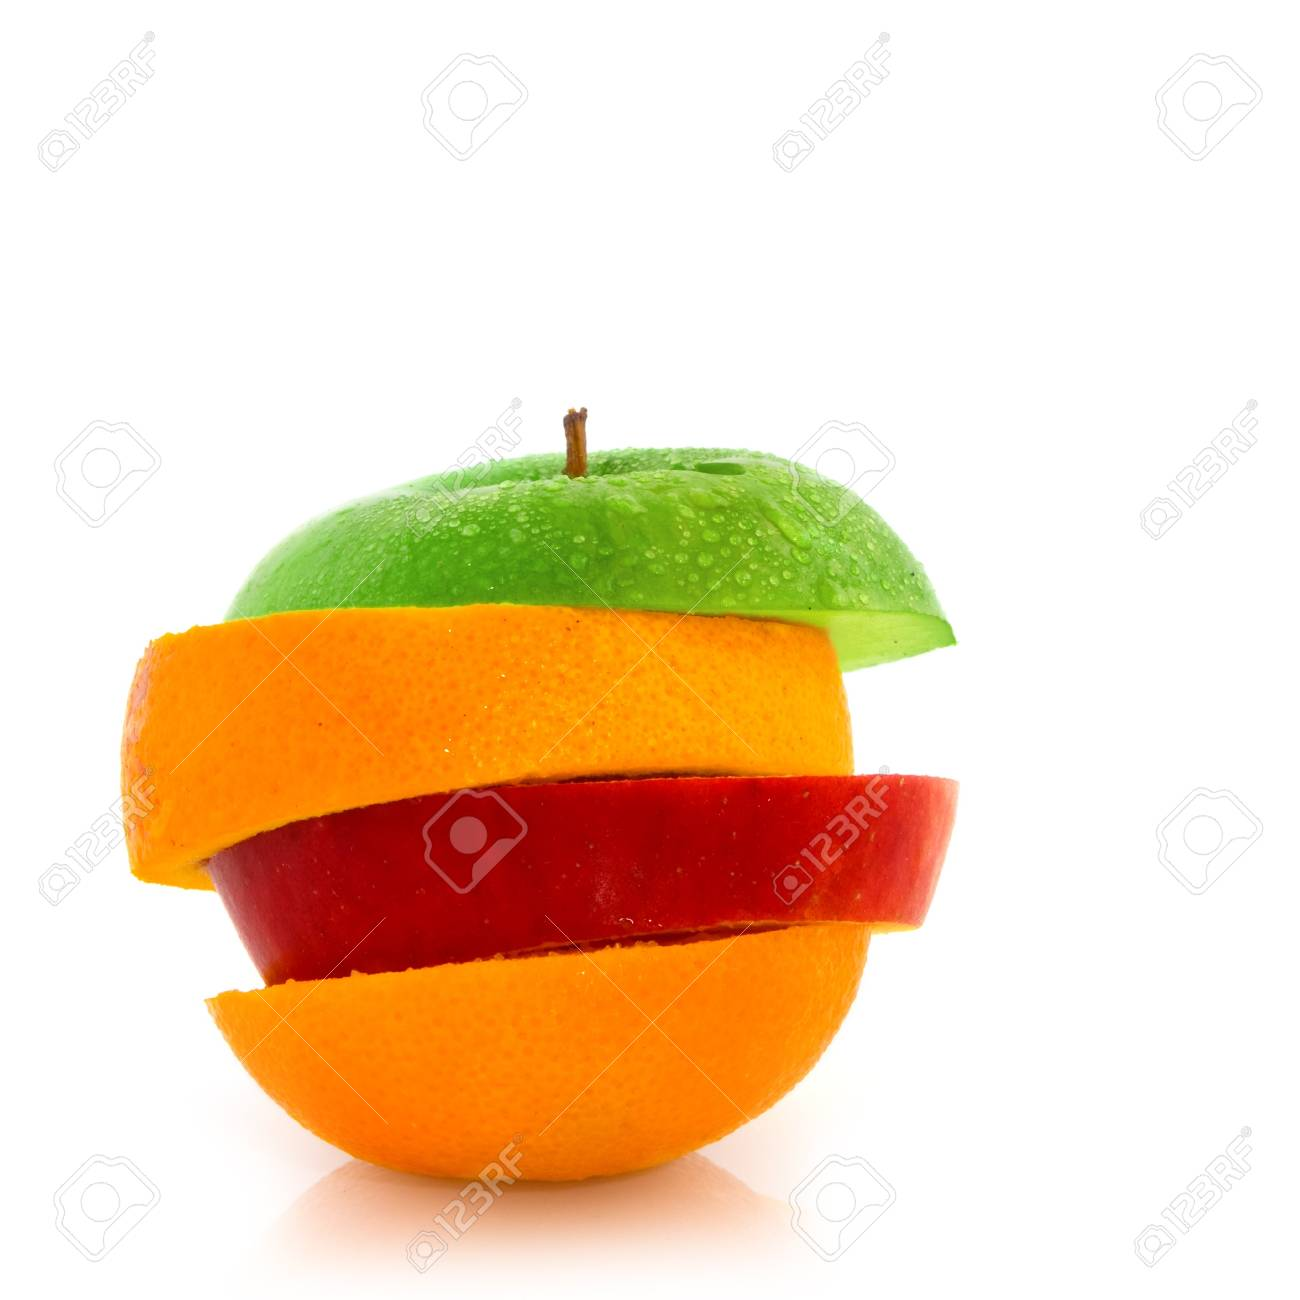 Juicy fresh fruit in slices isolated over white Stock Photo - 4429689